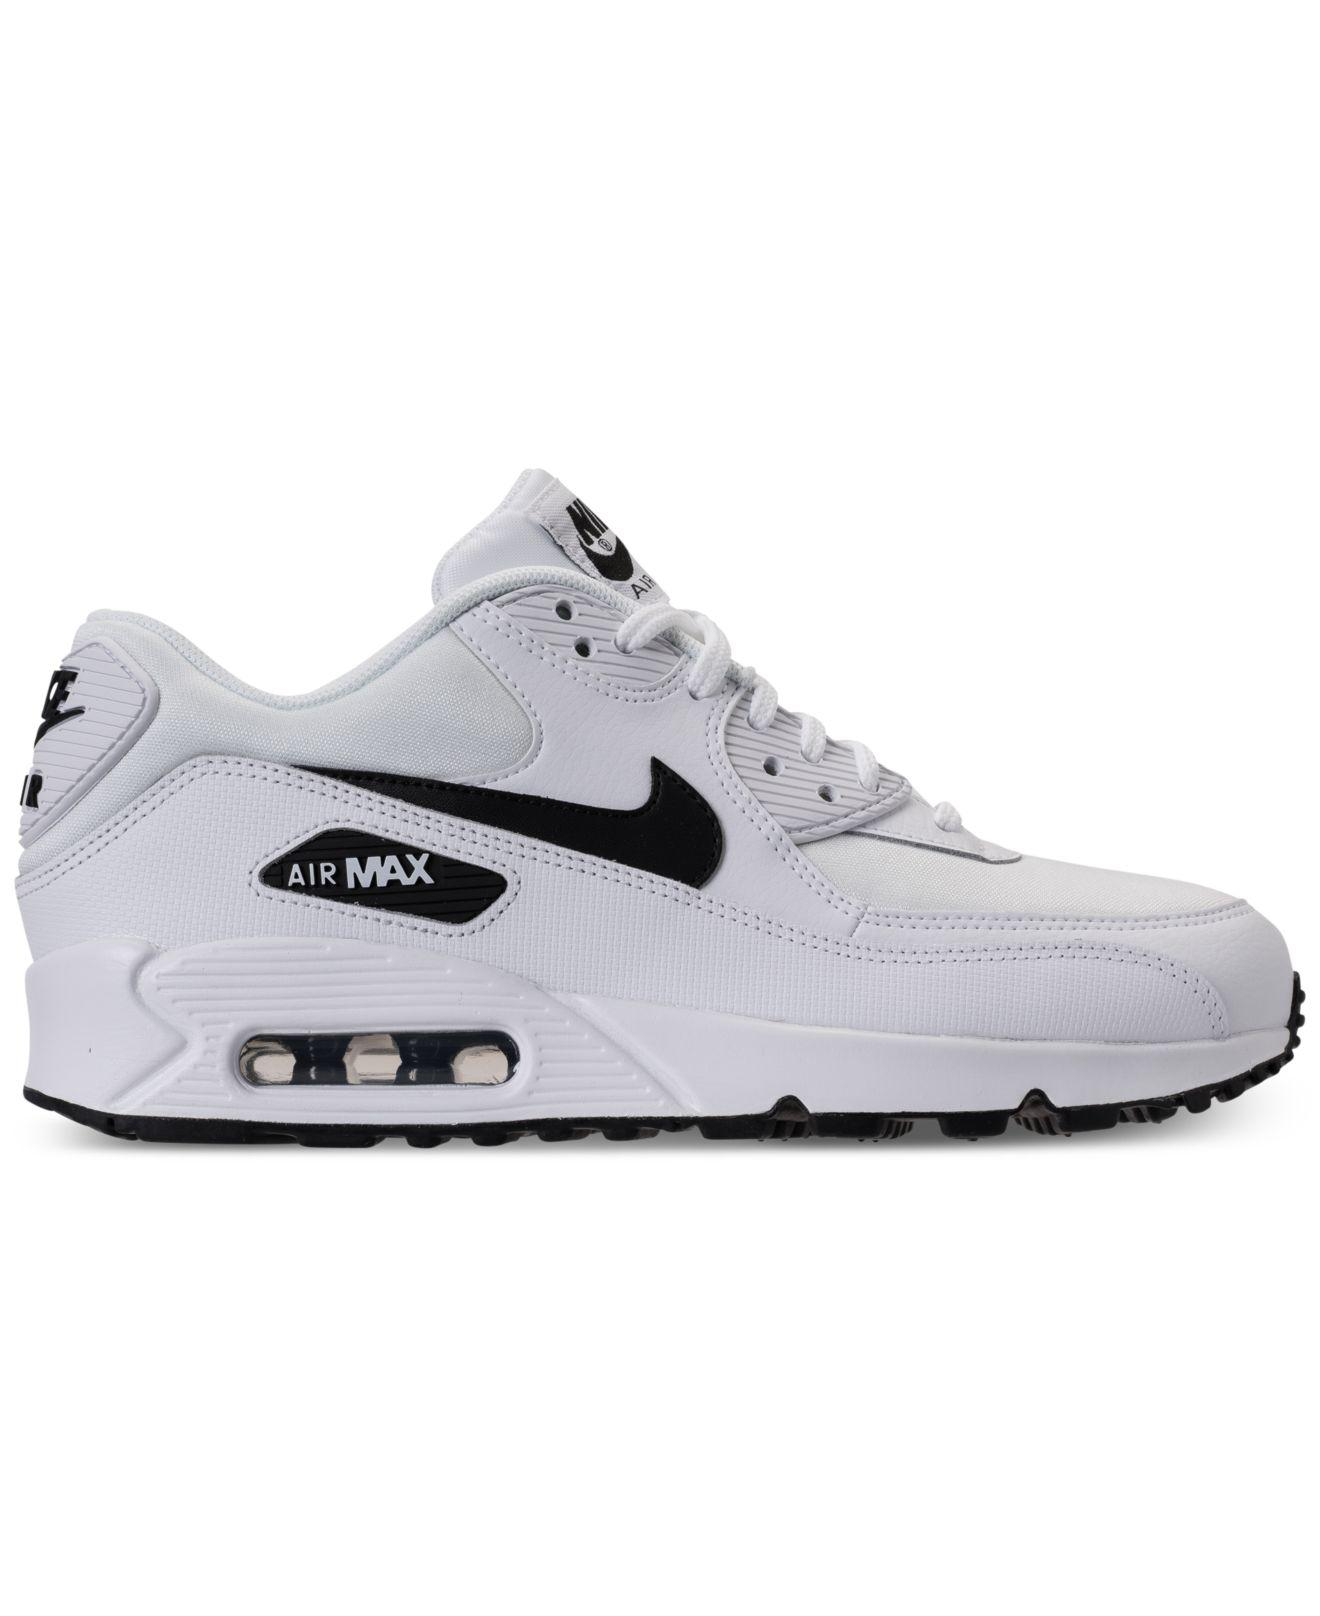 78e4acacc605 ... new zealand lyst nike air max 90 running sneakers from finish line in  white 95453 c1676